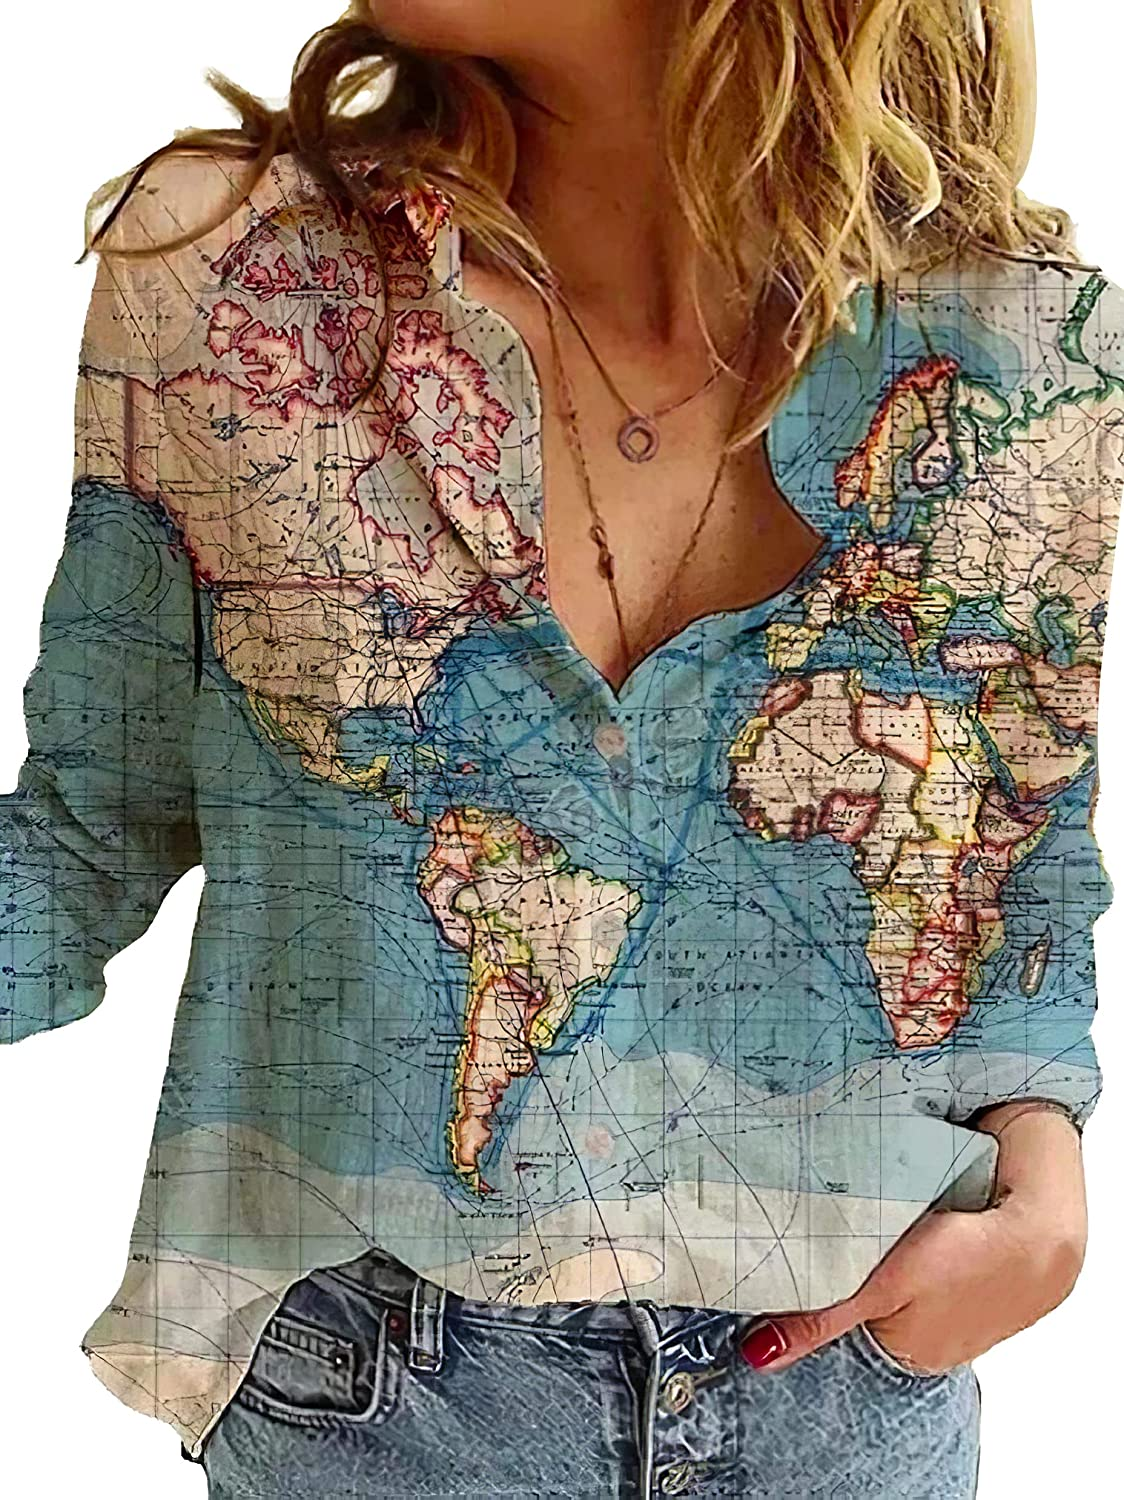 Unisex Creative World Globe Map All Over Print Buttons Shirts Loose Lapel Button Down Blouse Shirt